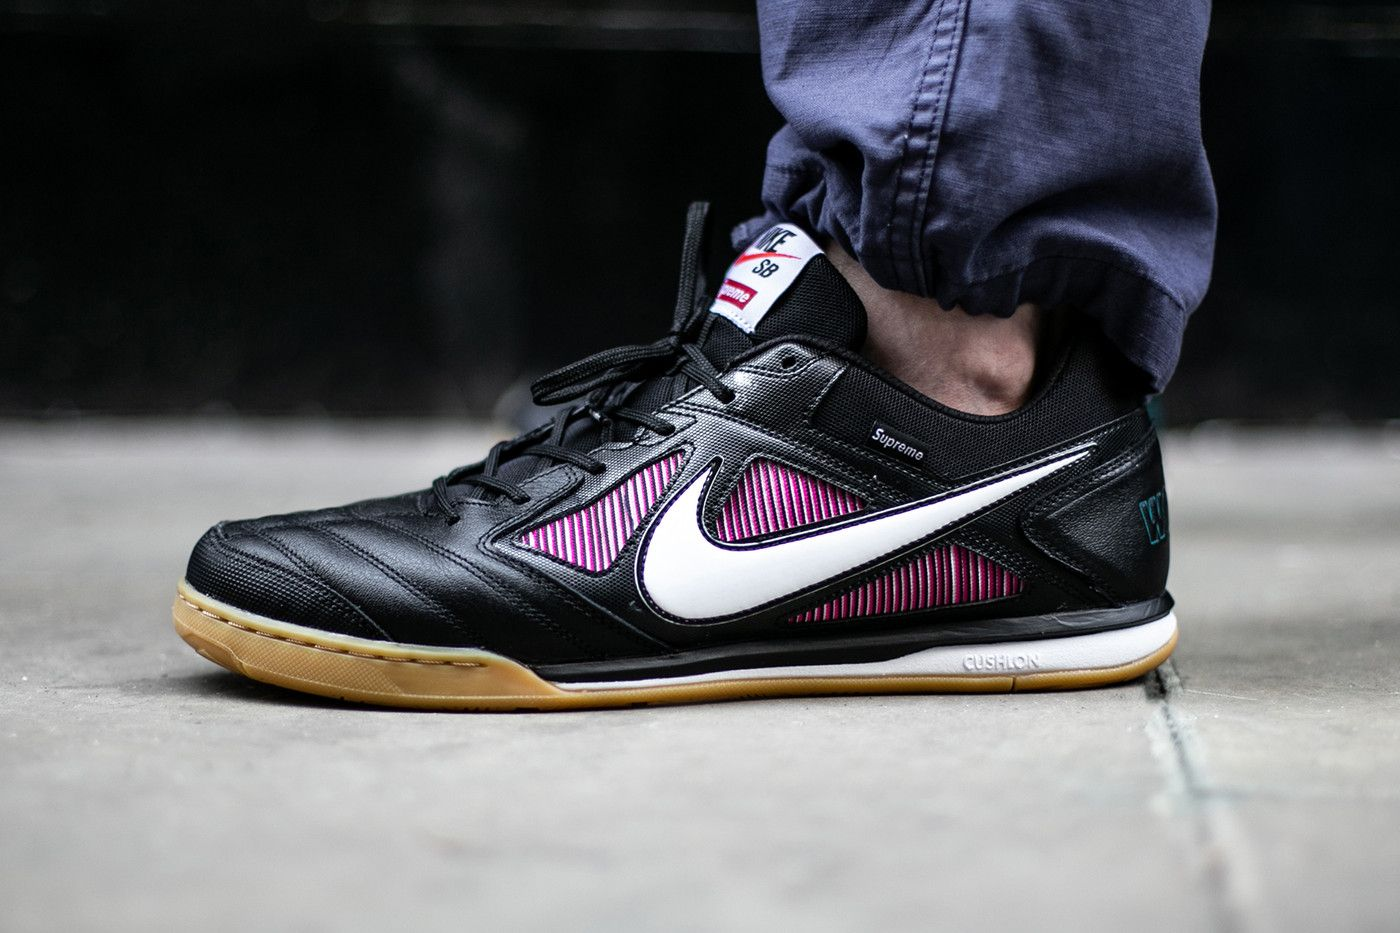 the latest 88bae 649af Supreme Nike SB Gato Closer First Look Black Colorway